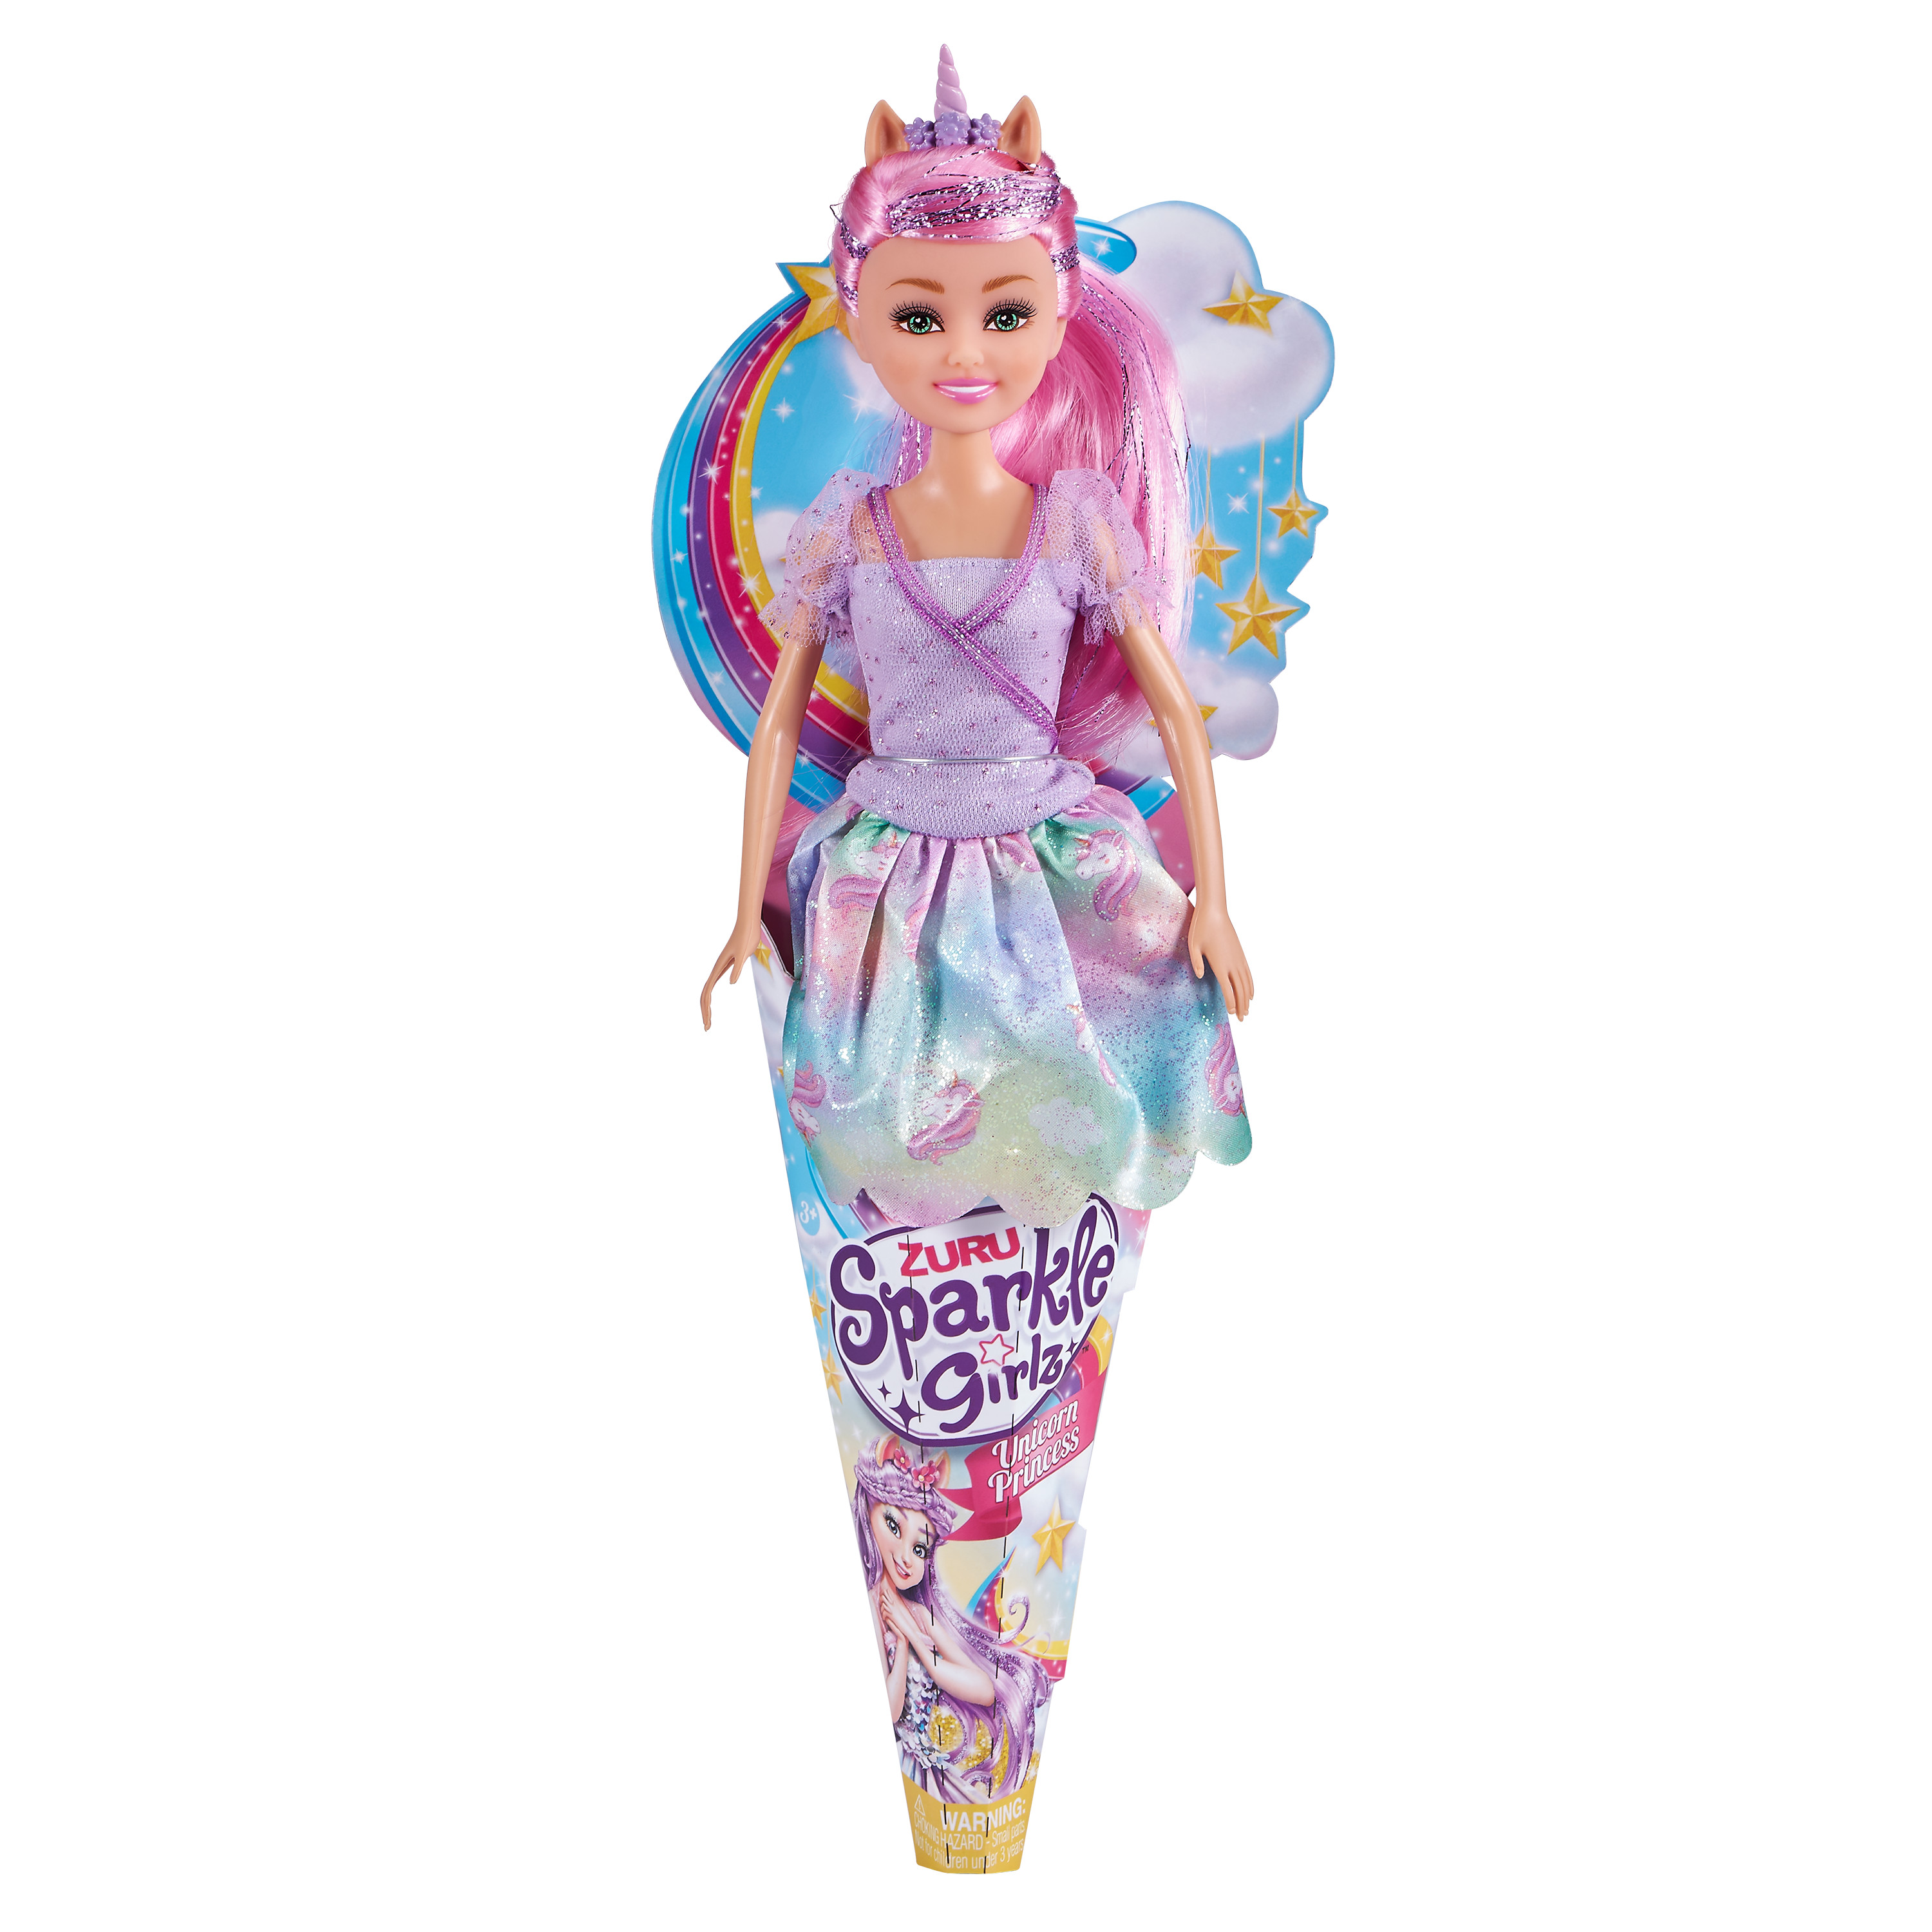 Zuru Sparkle Girlz Unicorn Princess Cupcake Doll 4.5 inch Mini Doll No.10094B